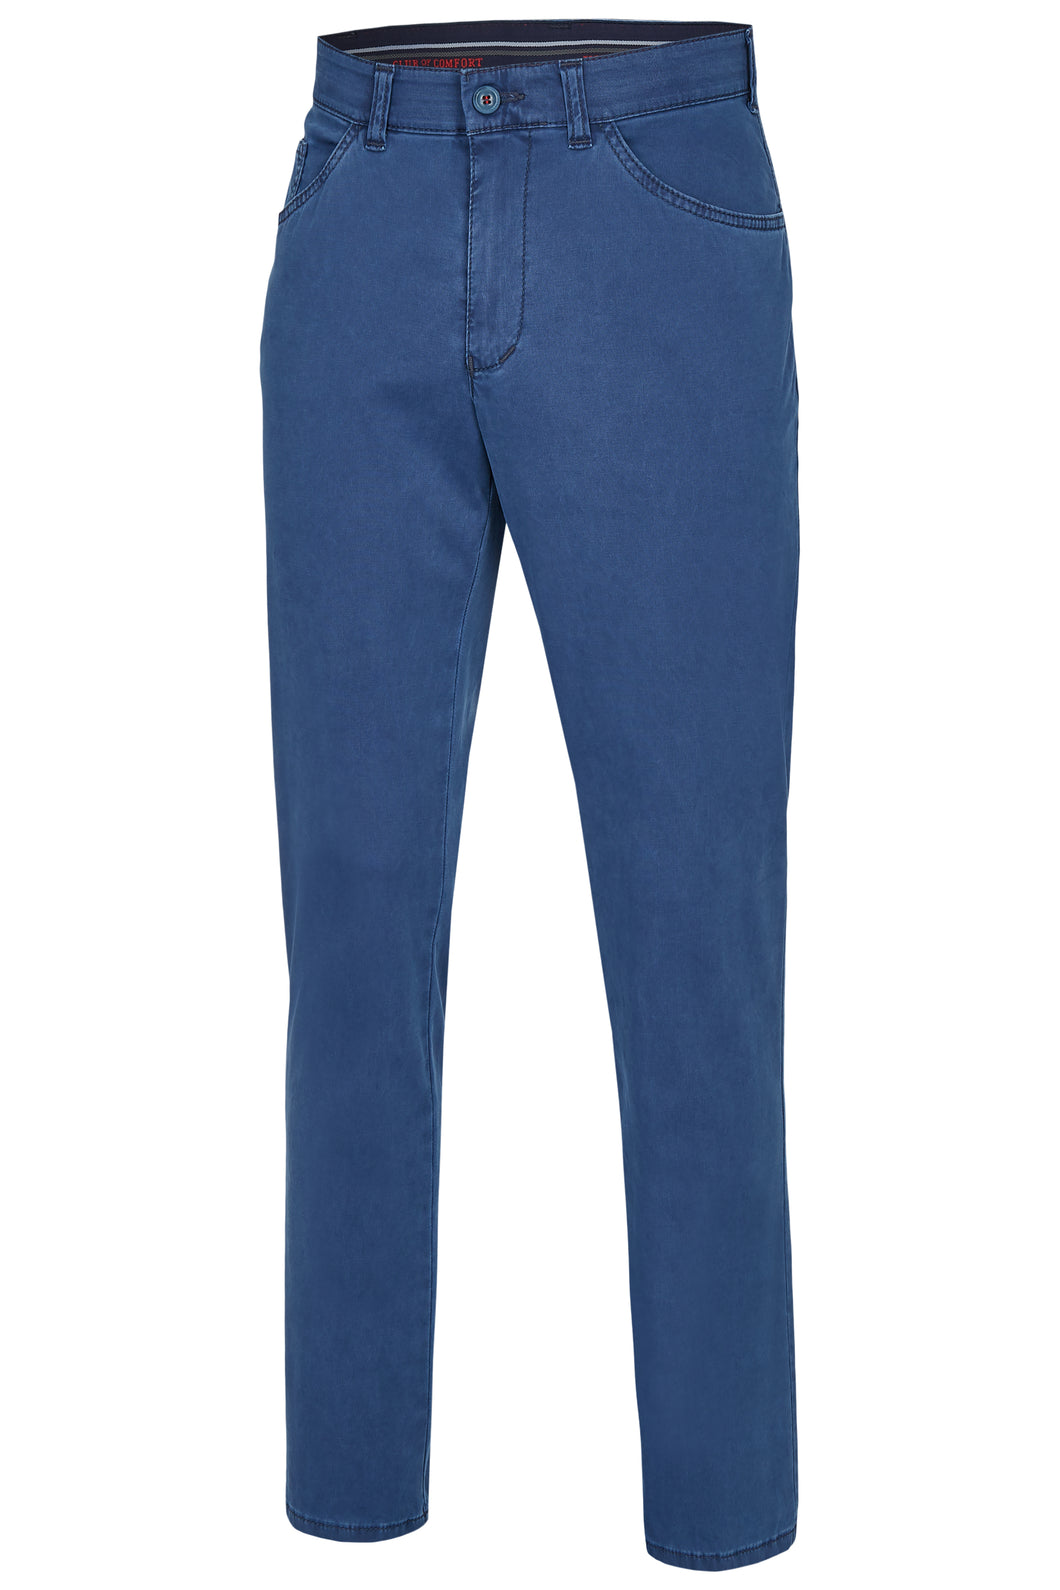 Club Of Comfort Western Style Cotton Trousers Keno R